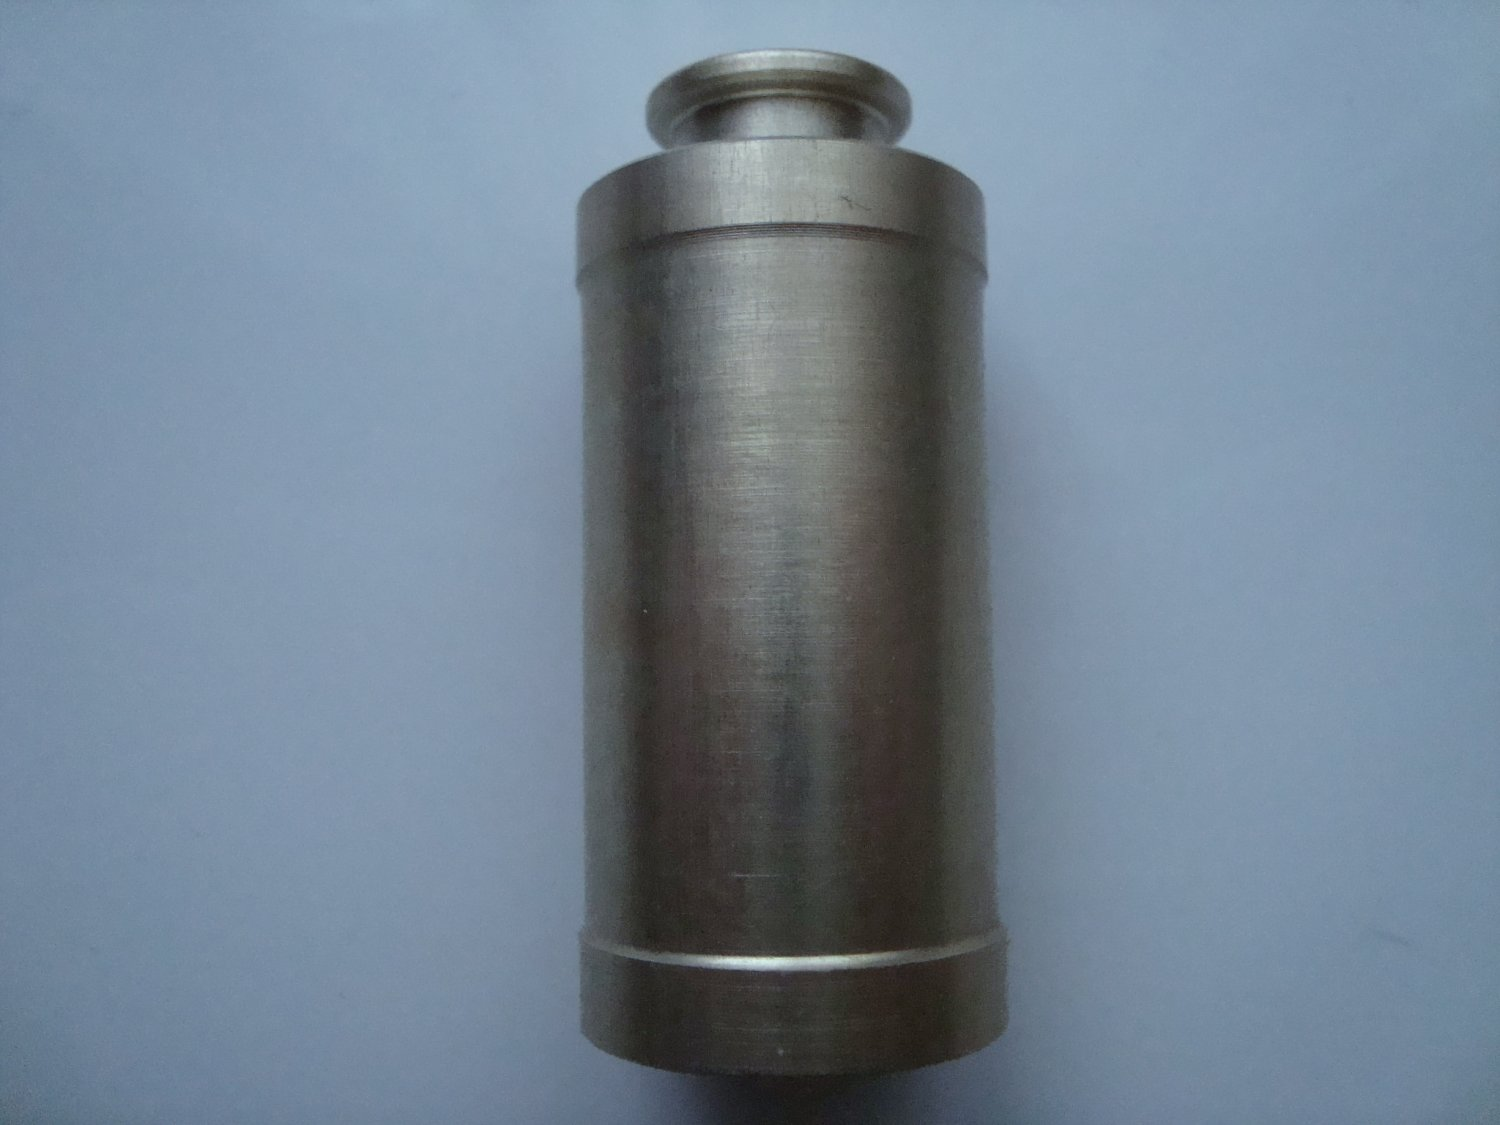 IZH-46, MP-46, MP-46M piston for upgrade spare parts for tuning Baikal, update repair modern details